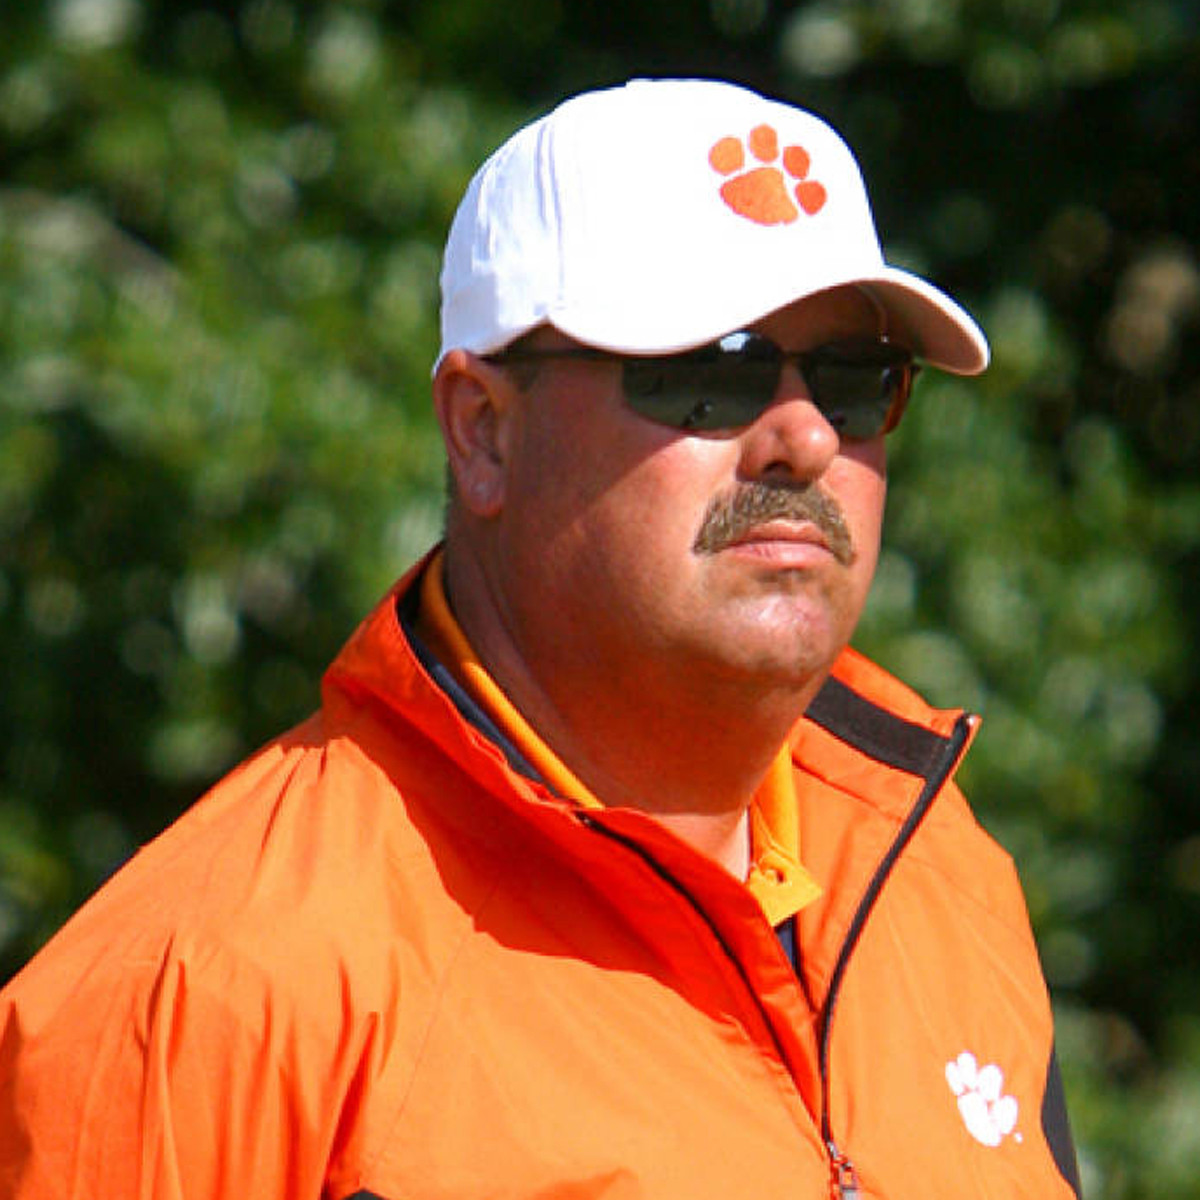 Clemson Ranked 12th in Latest Golfweek Poll.